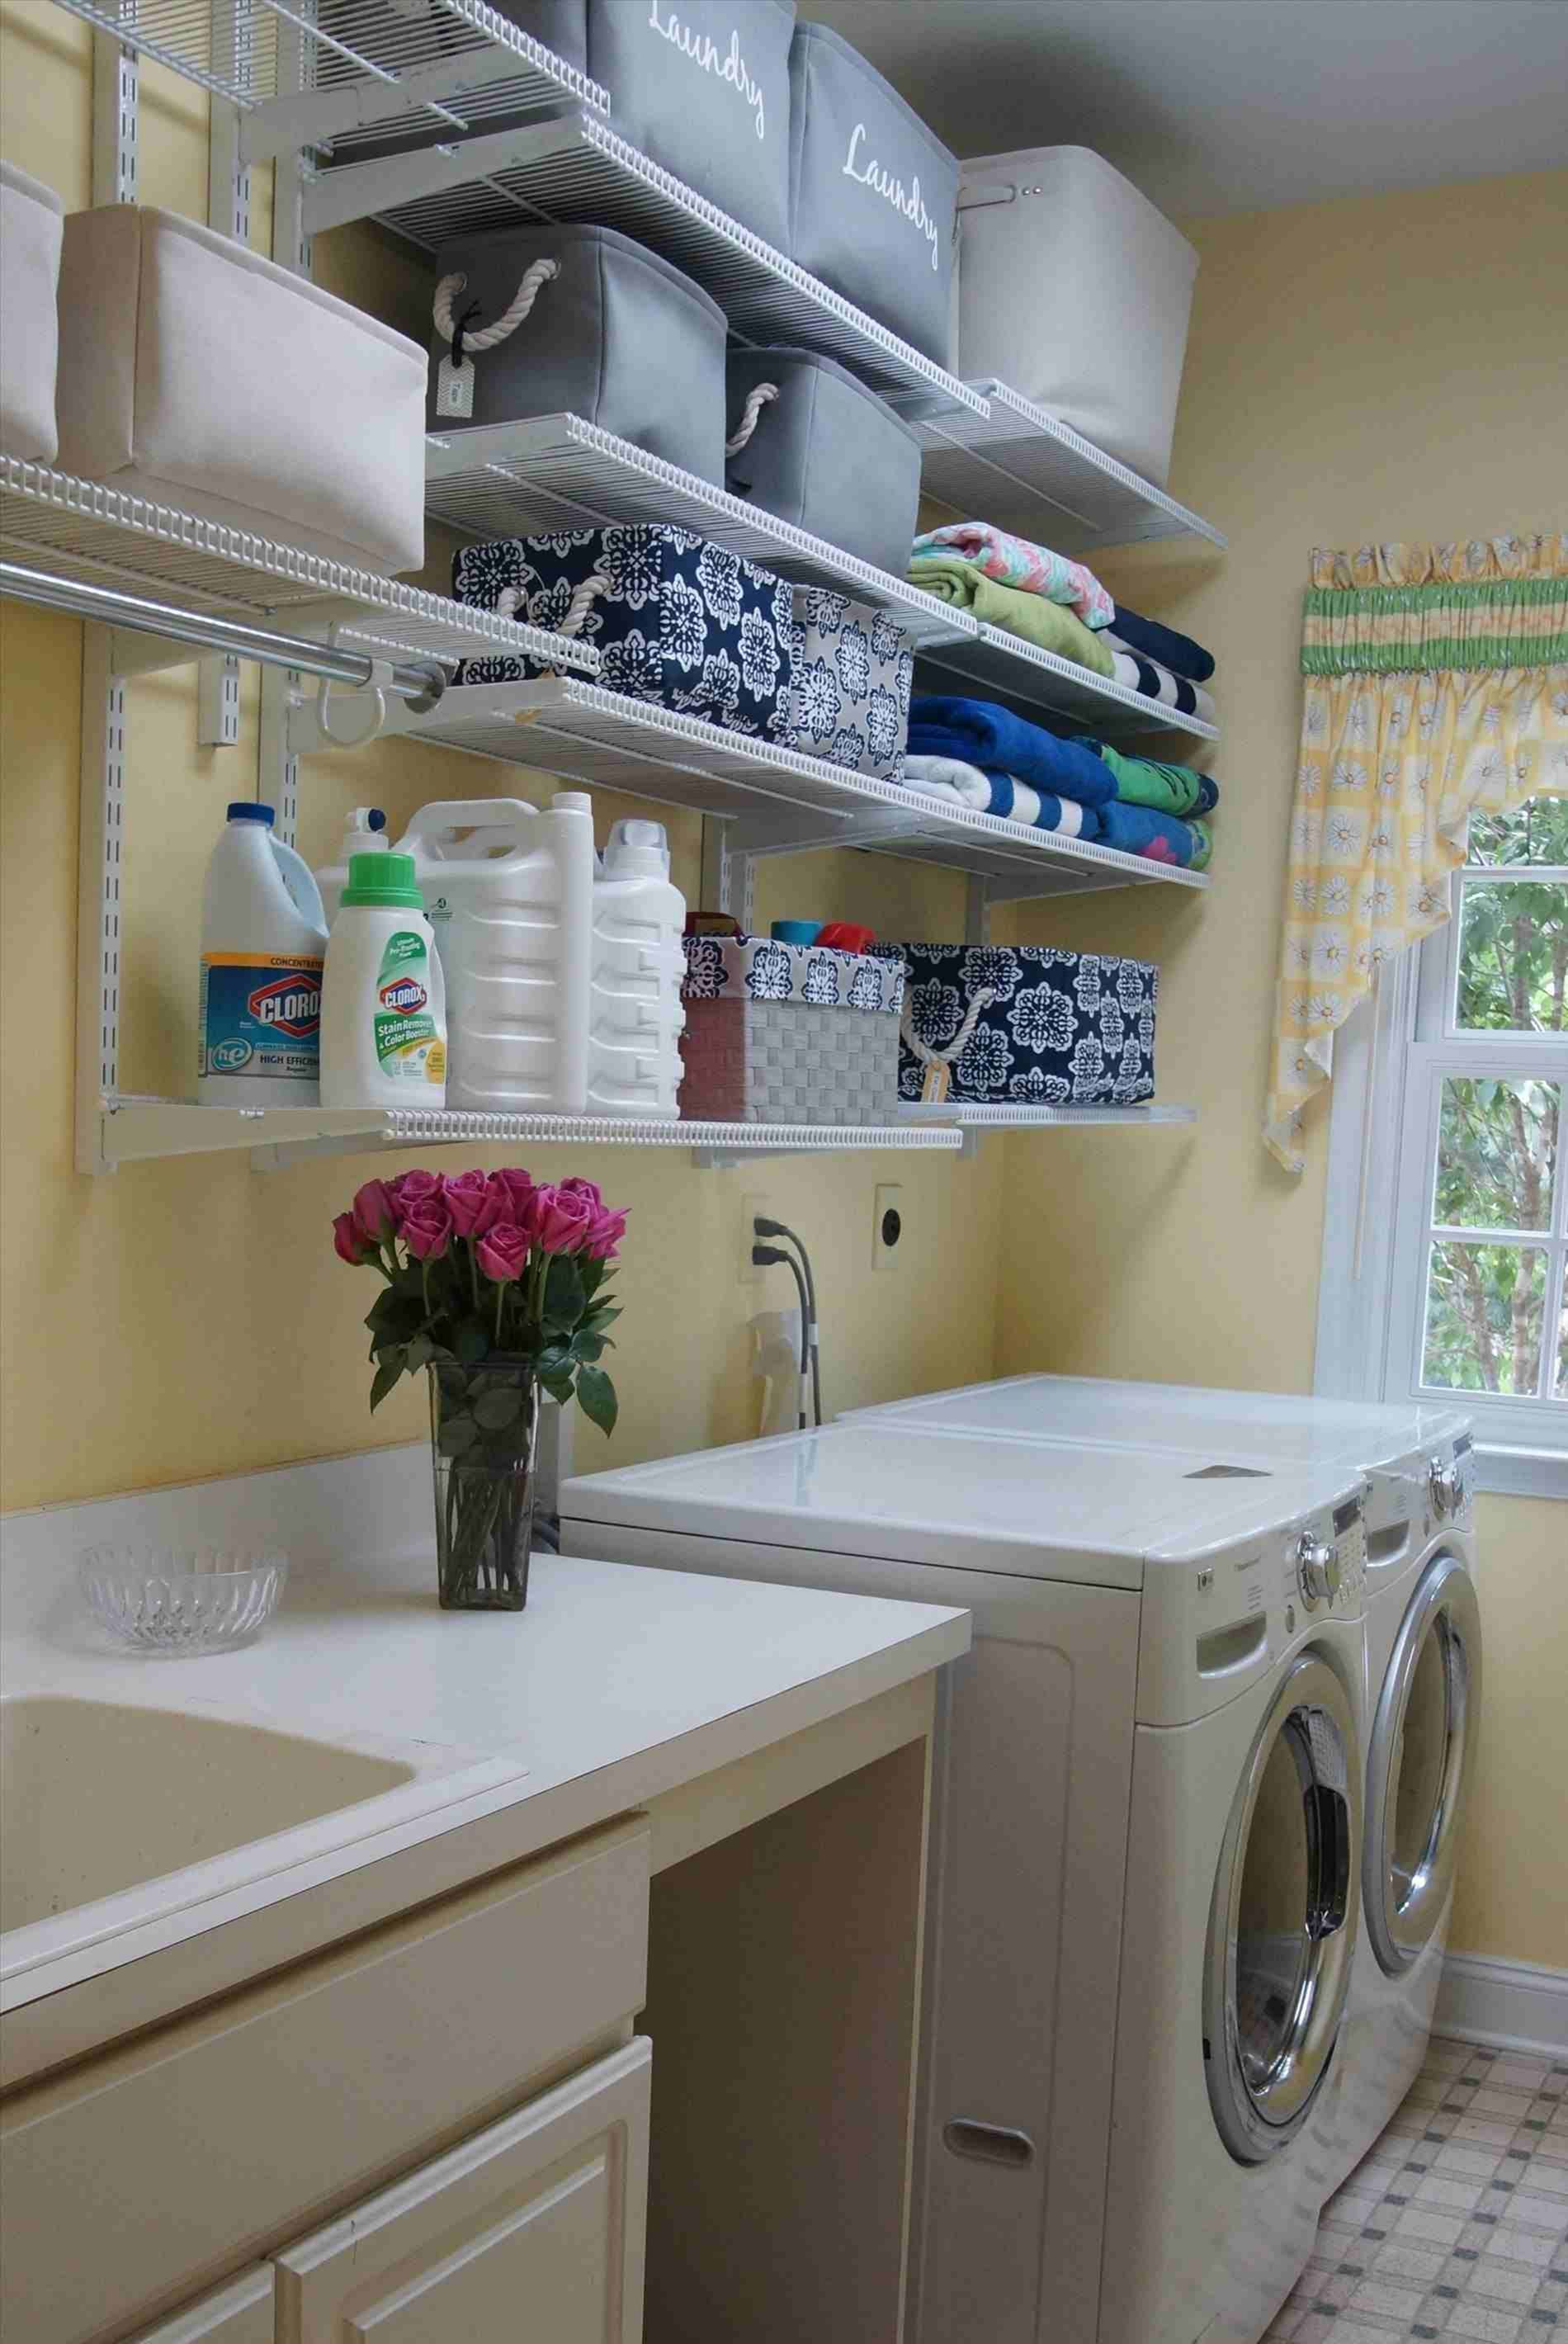 20 Stunning Laundry Room Decorating Ideas For Your Washing Comfort Design Decorating Laundry Room Storage Laundry Room Decor Laundry Room Organization